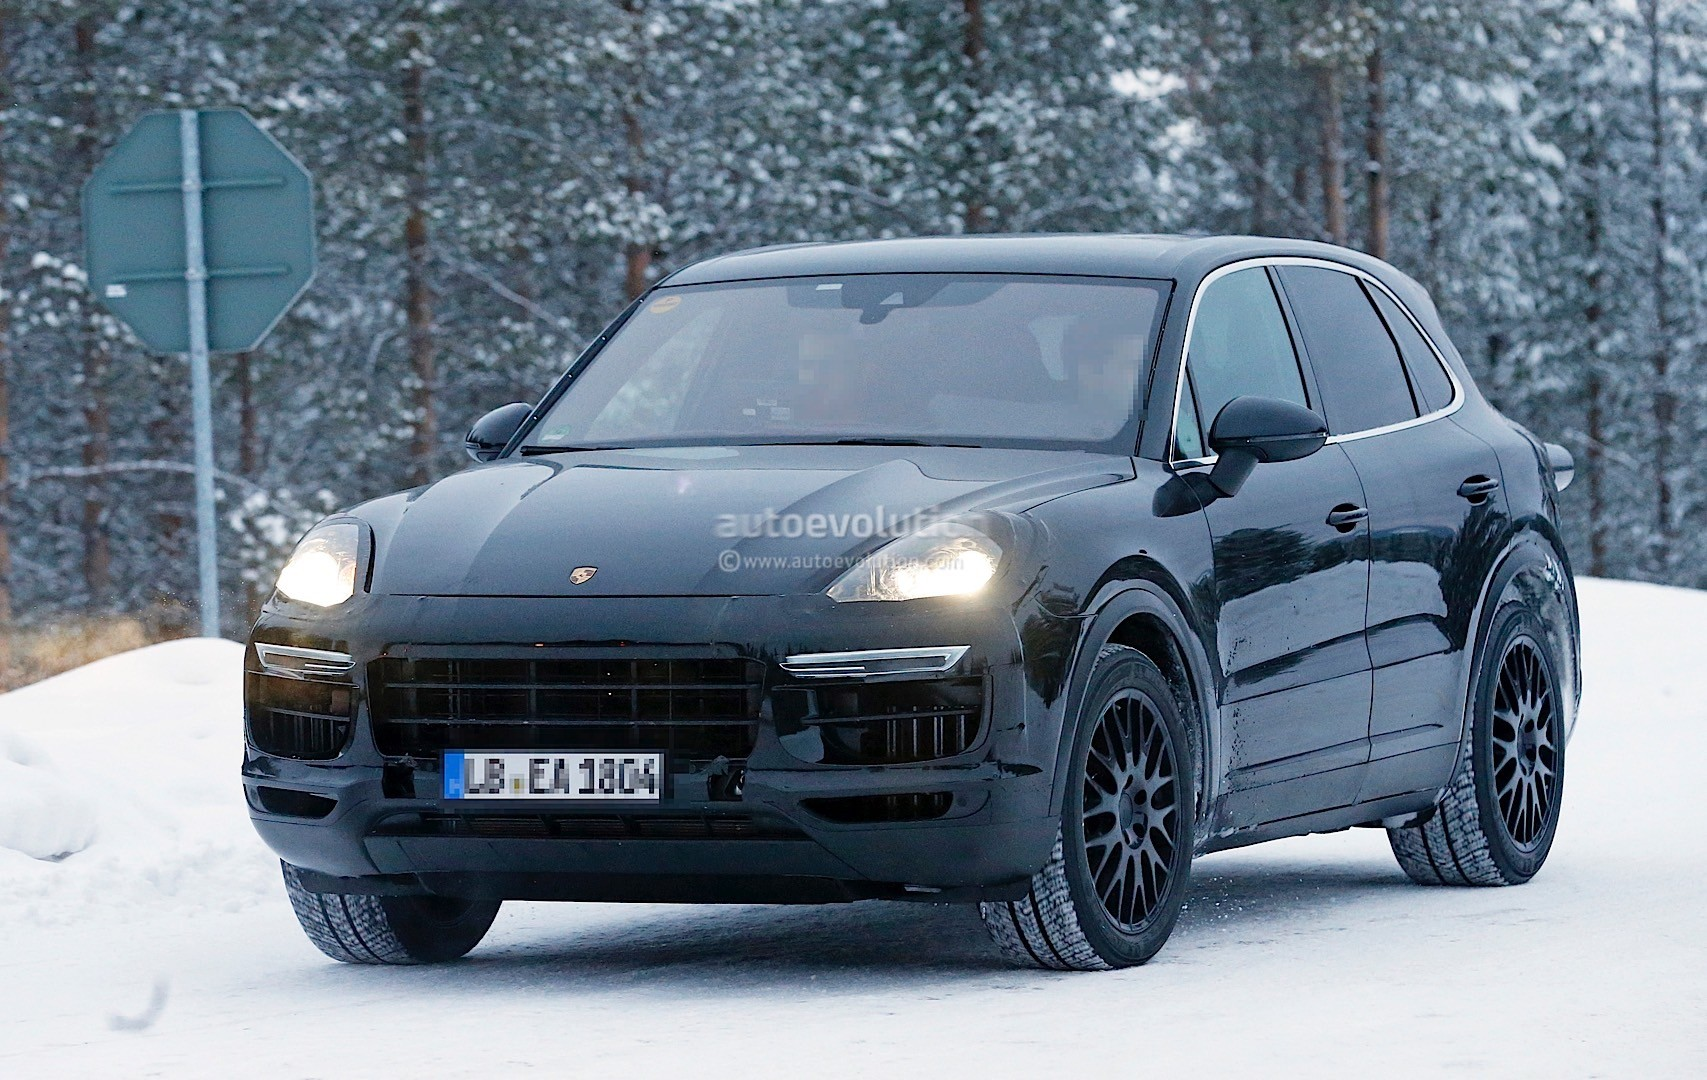 2018 Porsche Cayenne Spied Once More Enjoying The Last